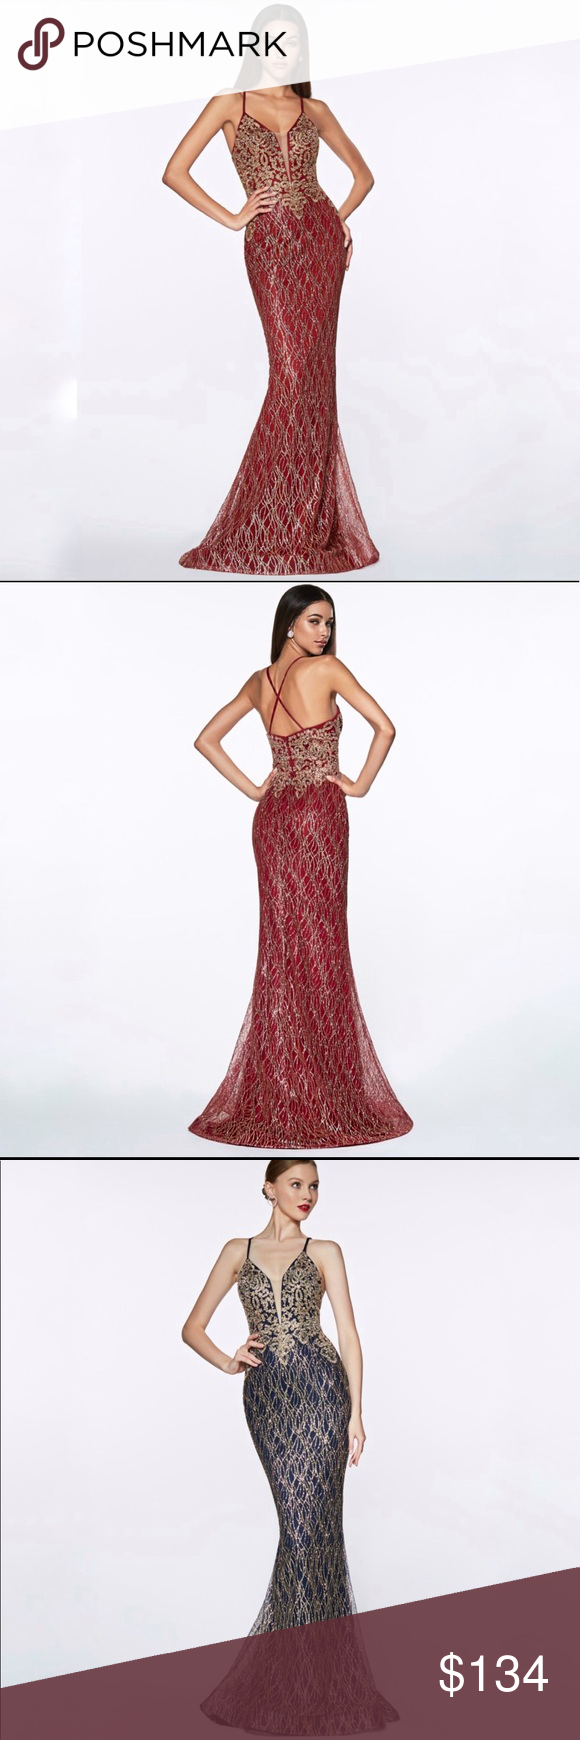 27e40541fe0f CINDERELLA DIVINE ML934 GLITTER LACE MERMAID DRESS Boutique prices are firm  unless bundled. Details: